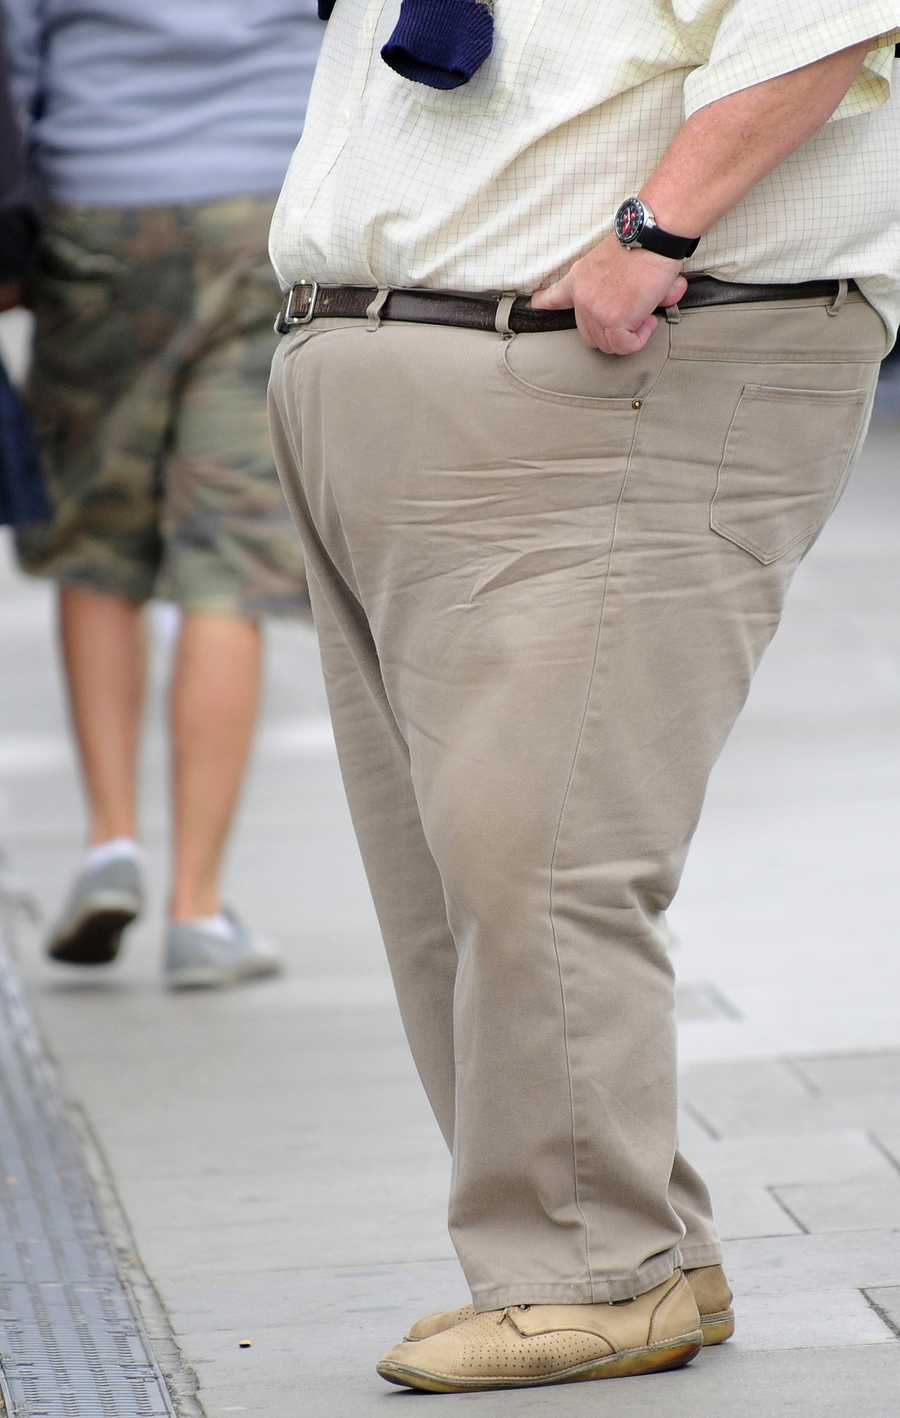 Trying to shed a few pounds around your mid-section?